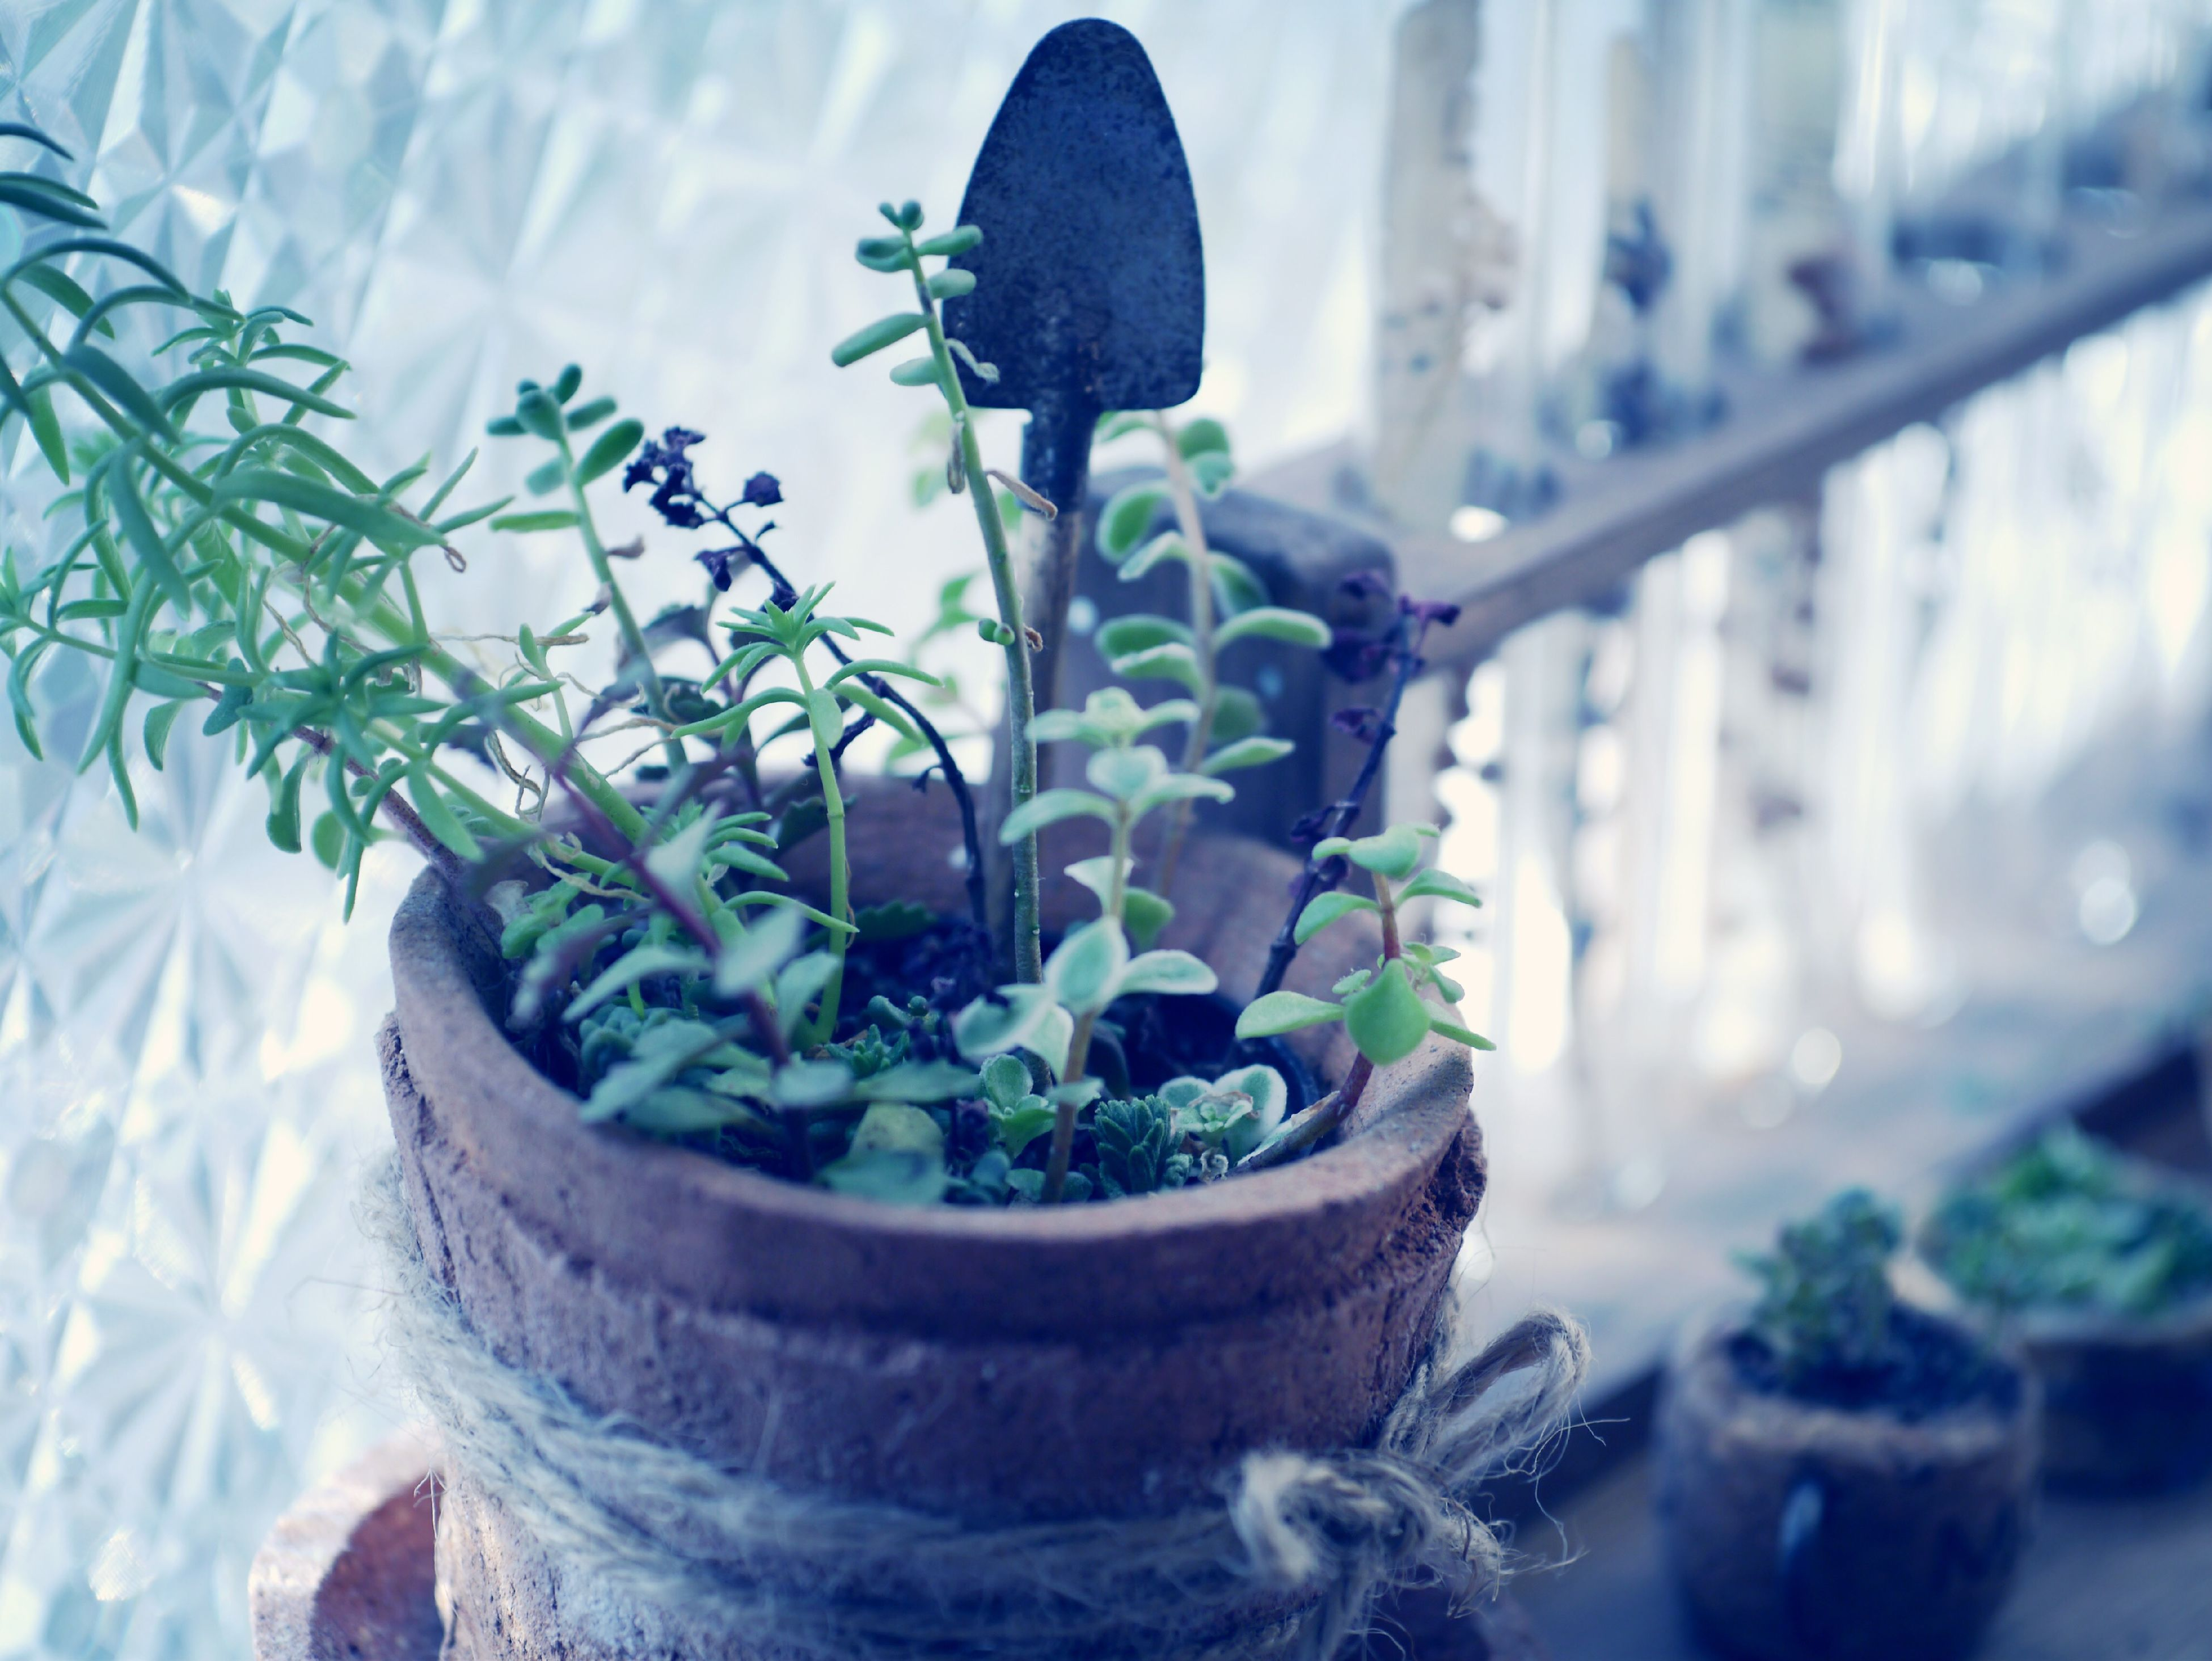 plant, potted plant, growth, leaf, focus on foreground, flower, close-up, nature, stem, green color, fragility, freshness, day, beauty in nature, wall - building feature, cactus, no people, outdoors, growing